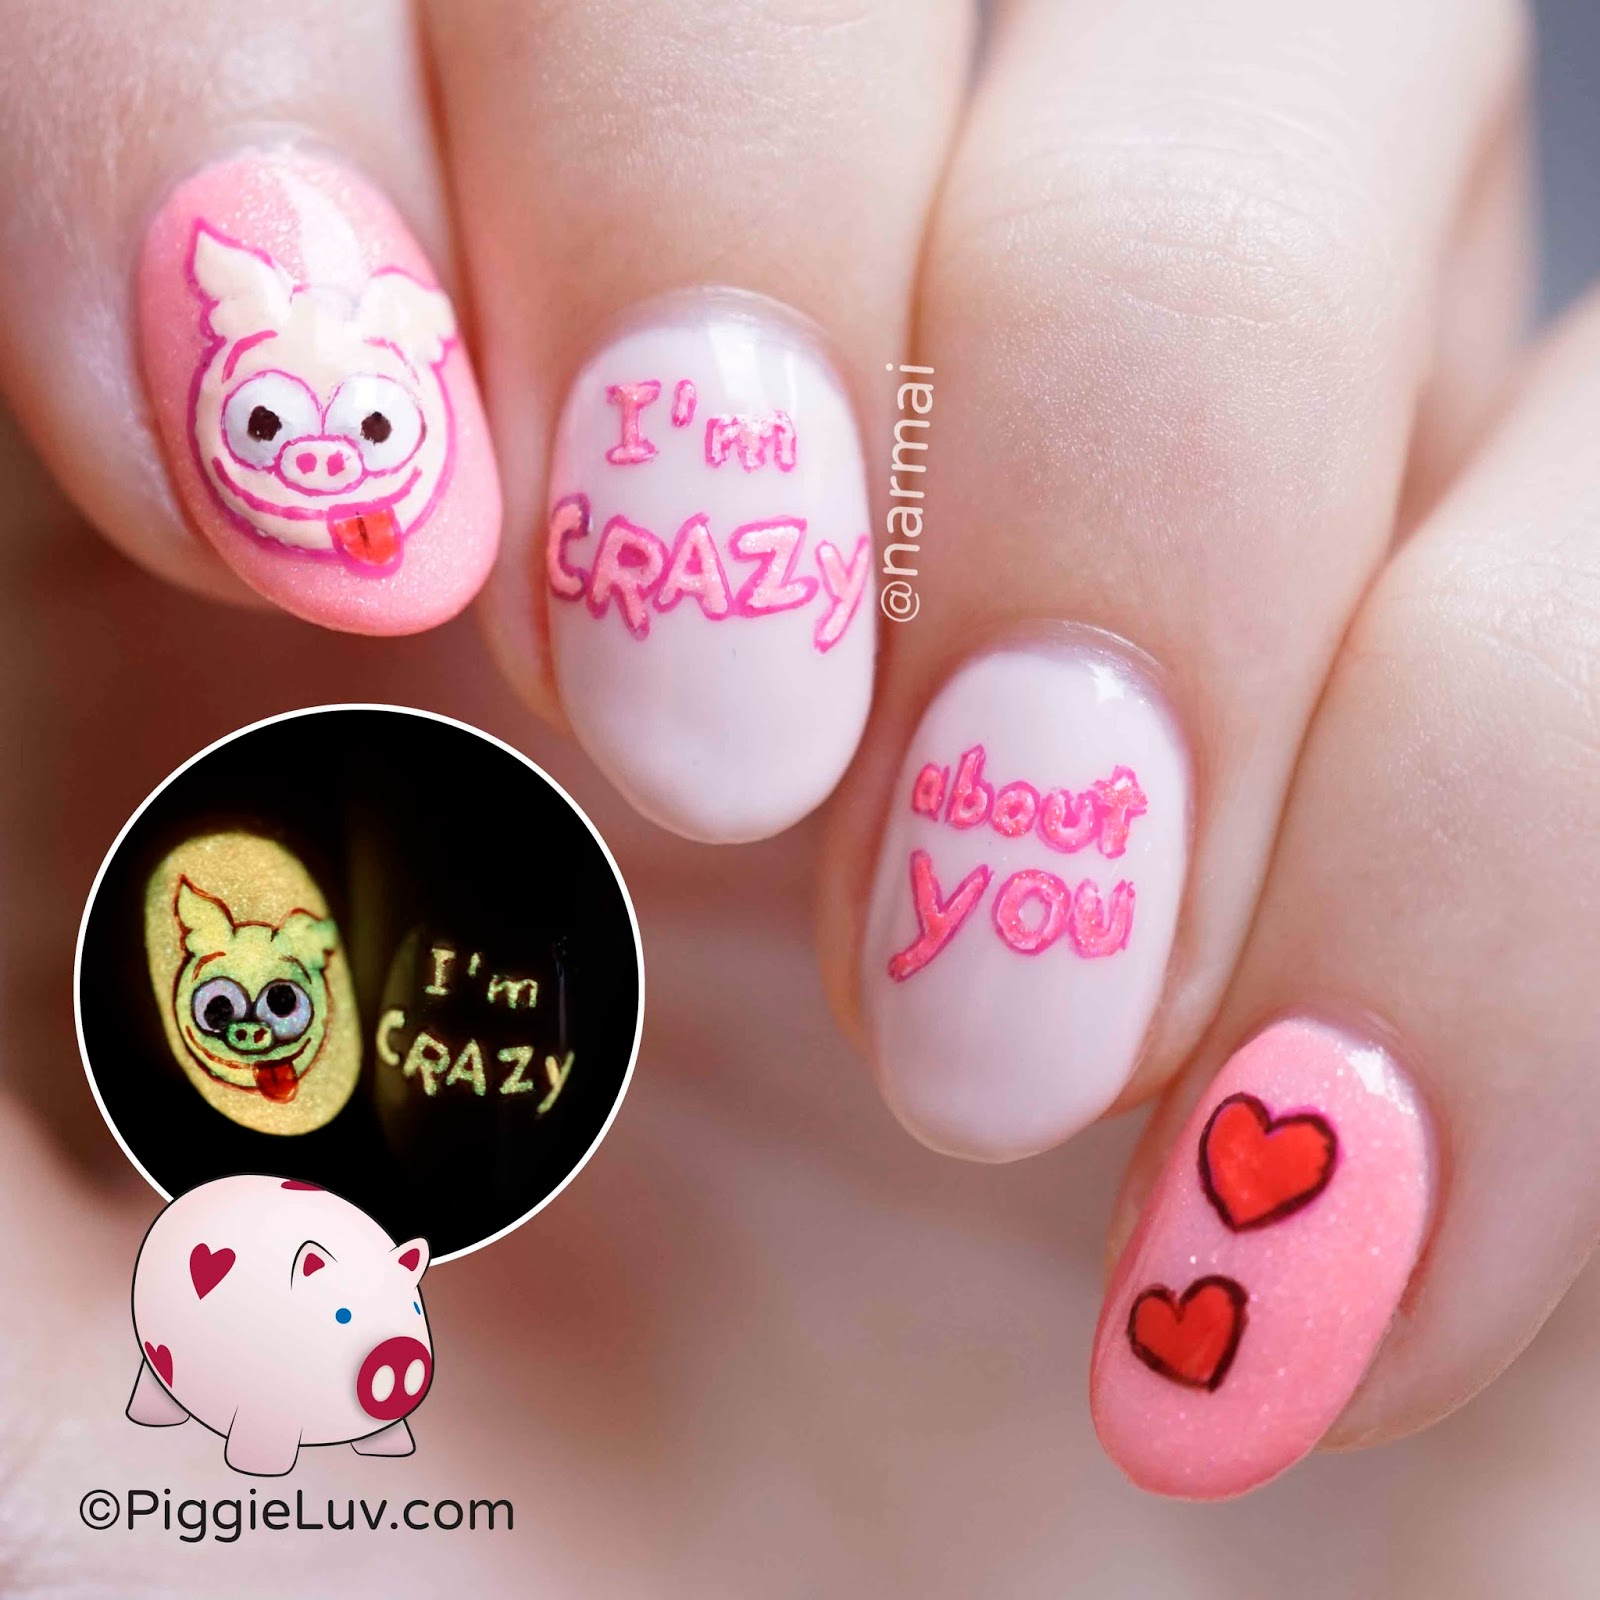 PiggieLuv: Crazy eyes pig nail art for Valentine's Day